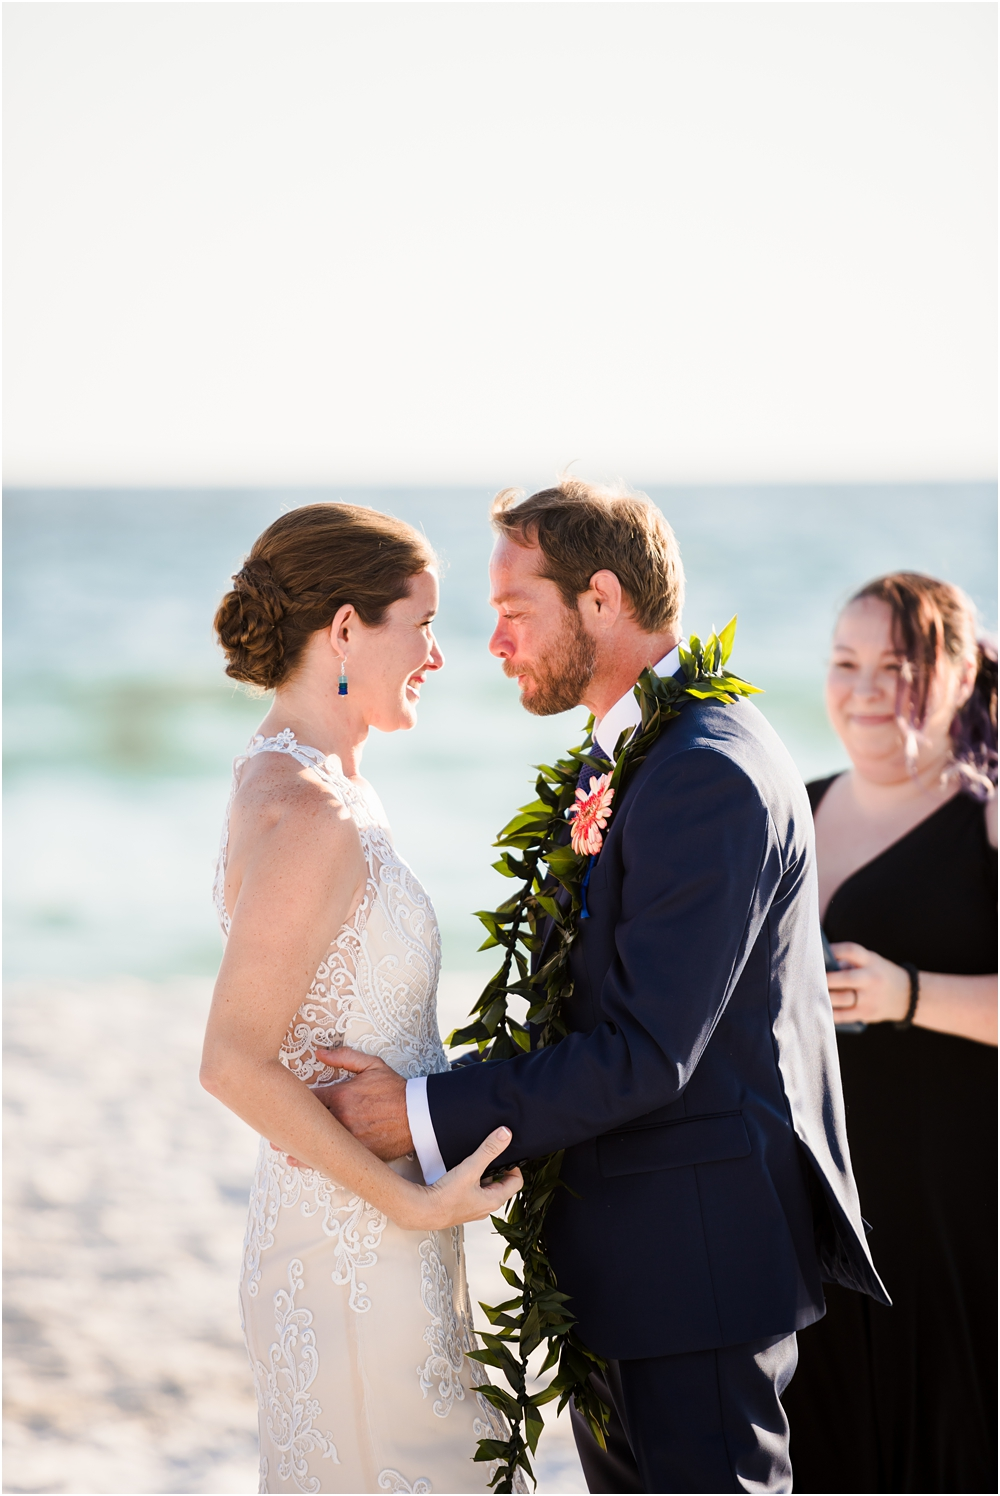 ledman-wedding-kiersten-stevenson-photography-30a-panama-city-beach-dothan-tallahassee-(248-of-763).JPG